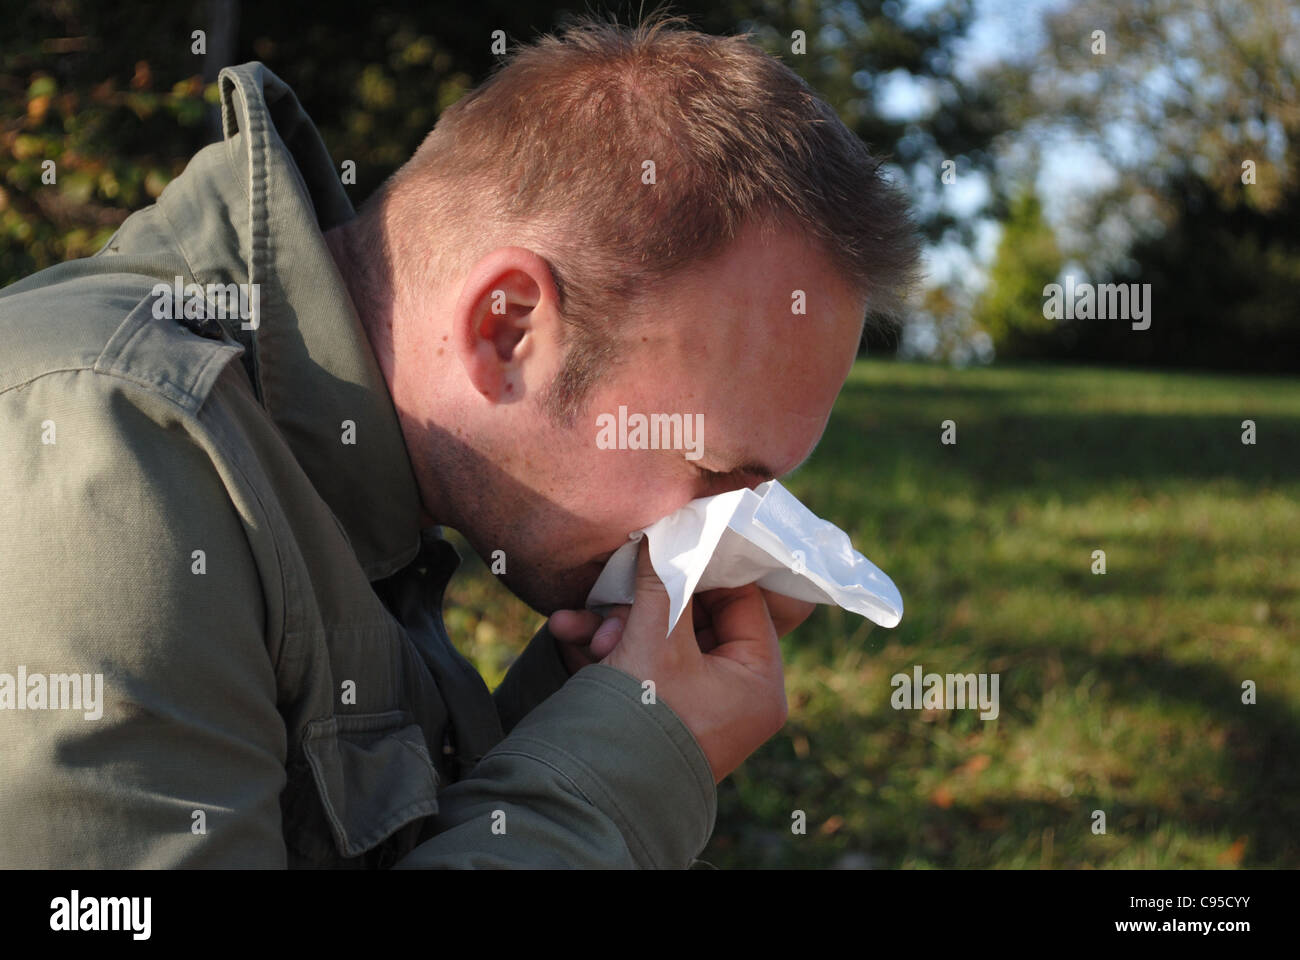 man blowing his nose (cold,flu,allergy) - Stock Image